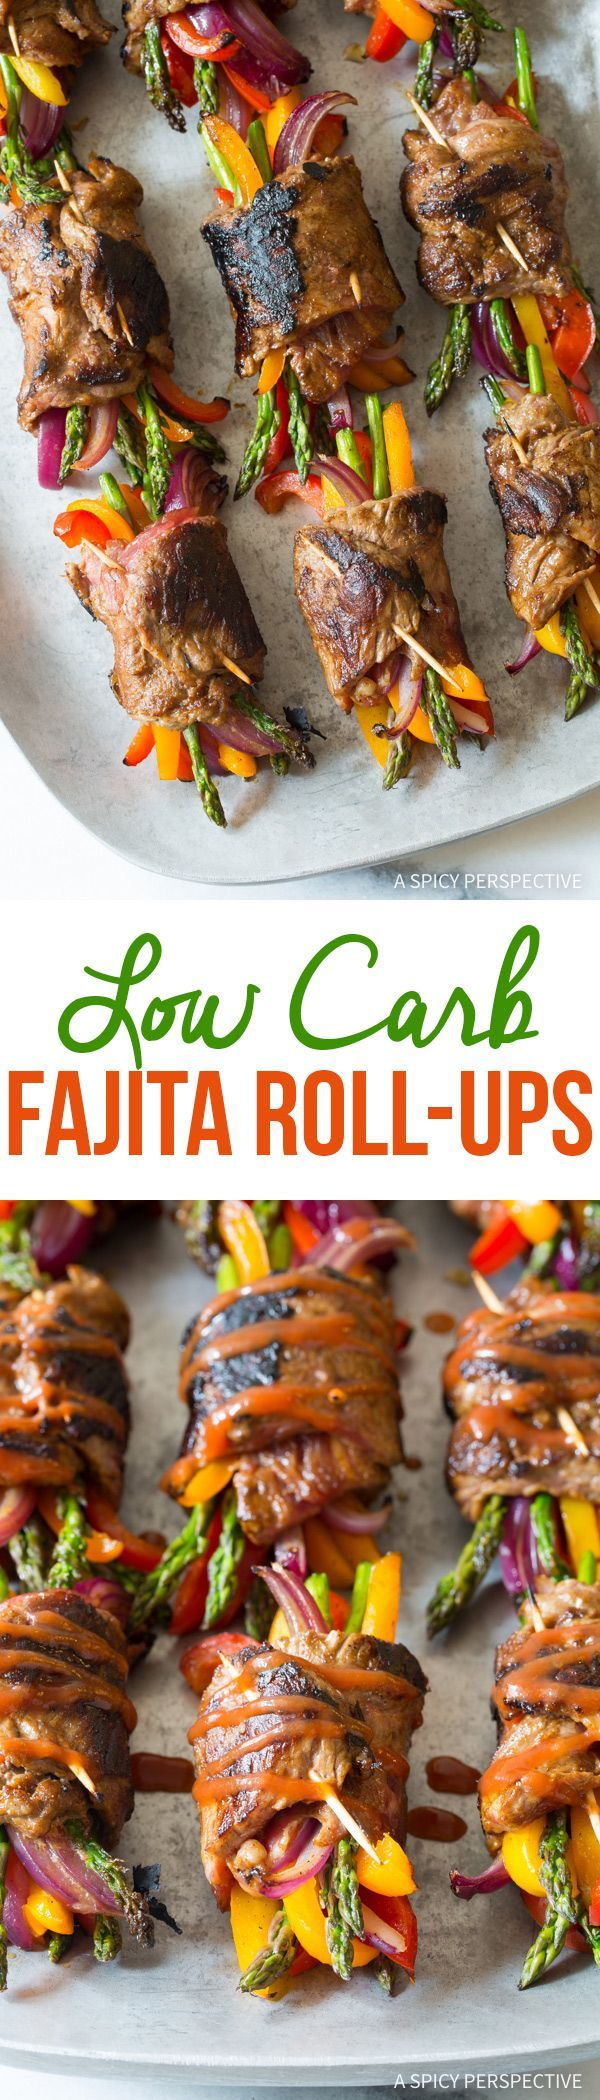 Zesty Low Carb Steak Fajita Roll-Ups - These healthy keto treats can either be a snack or a meal!